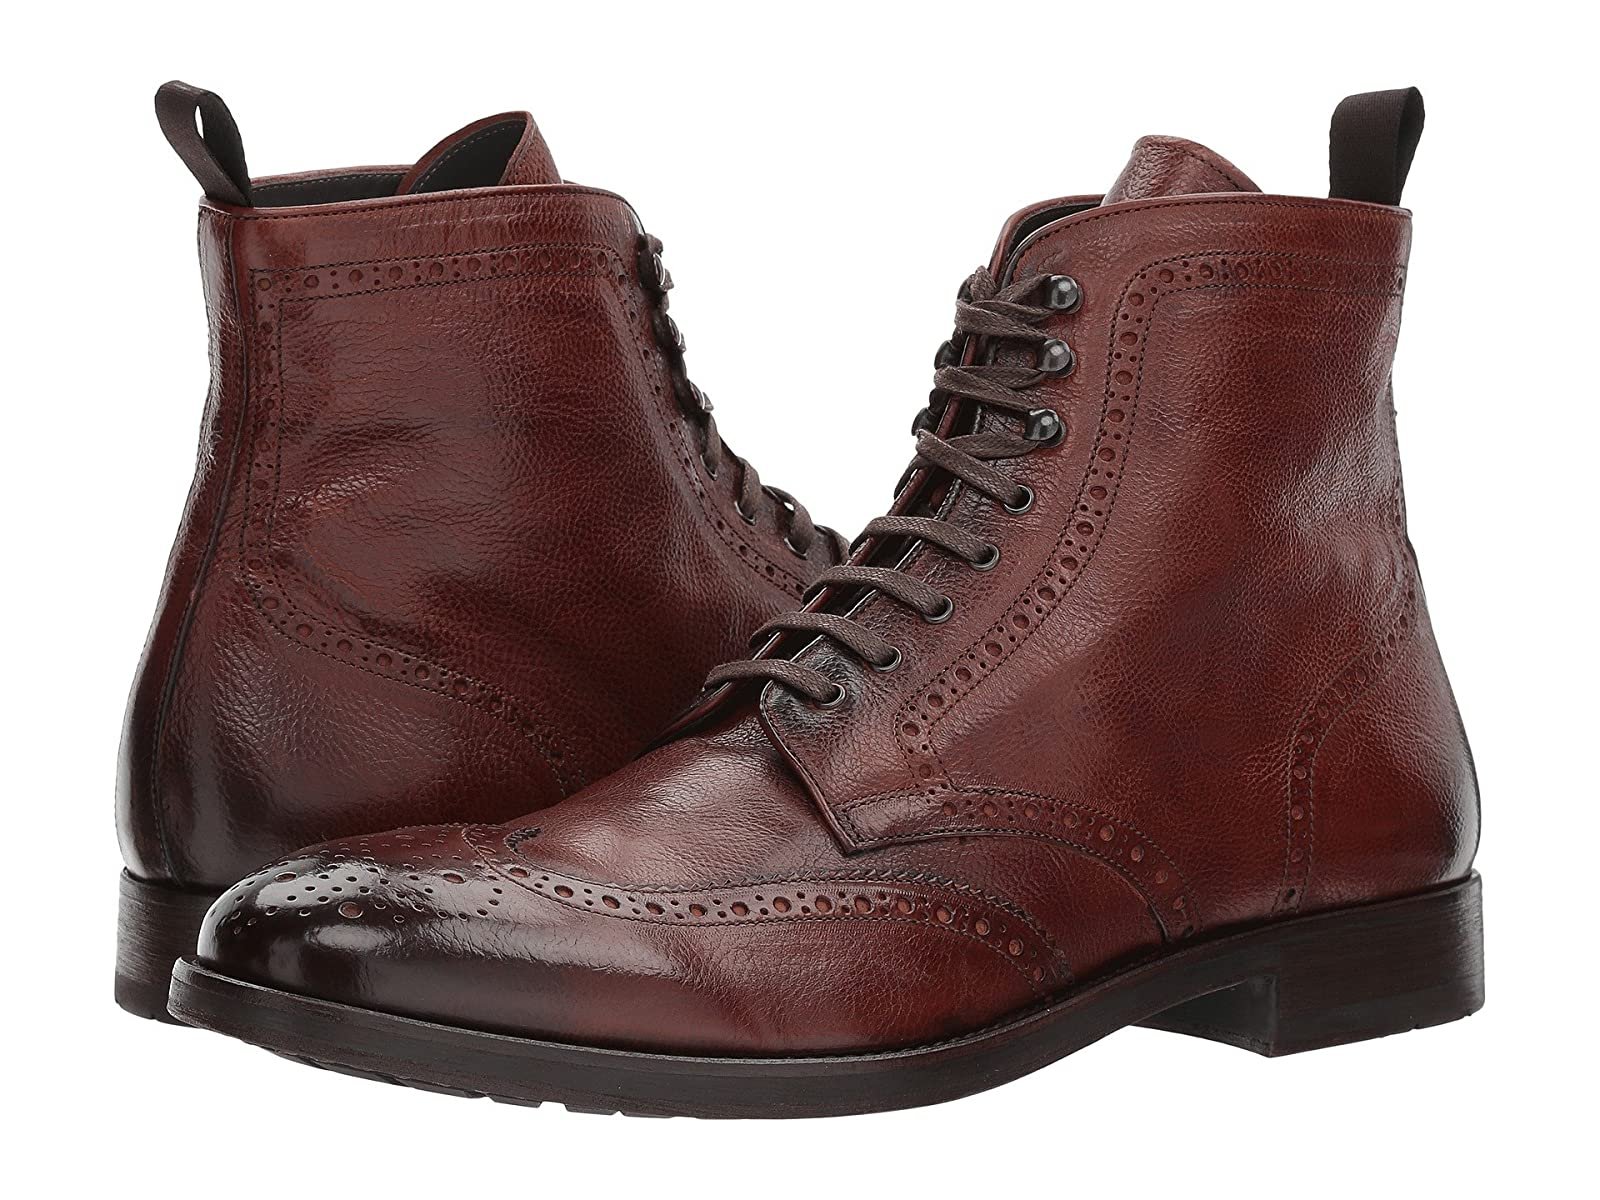 To Boot New York BrucknerEconomical and quality shoes